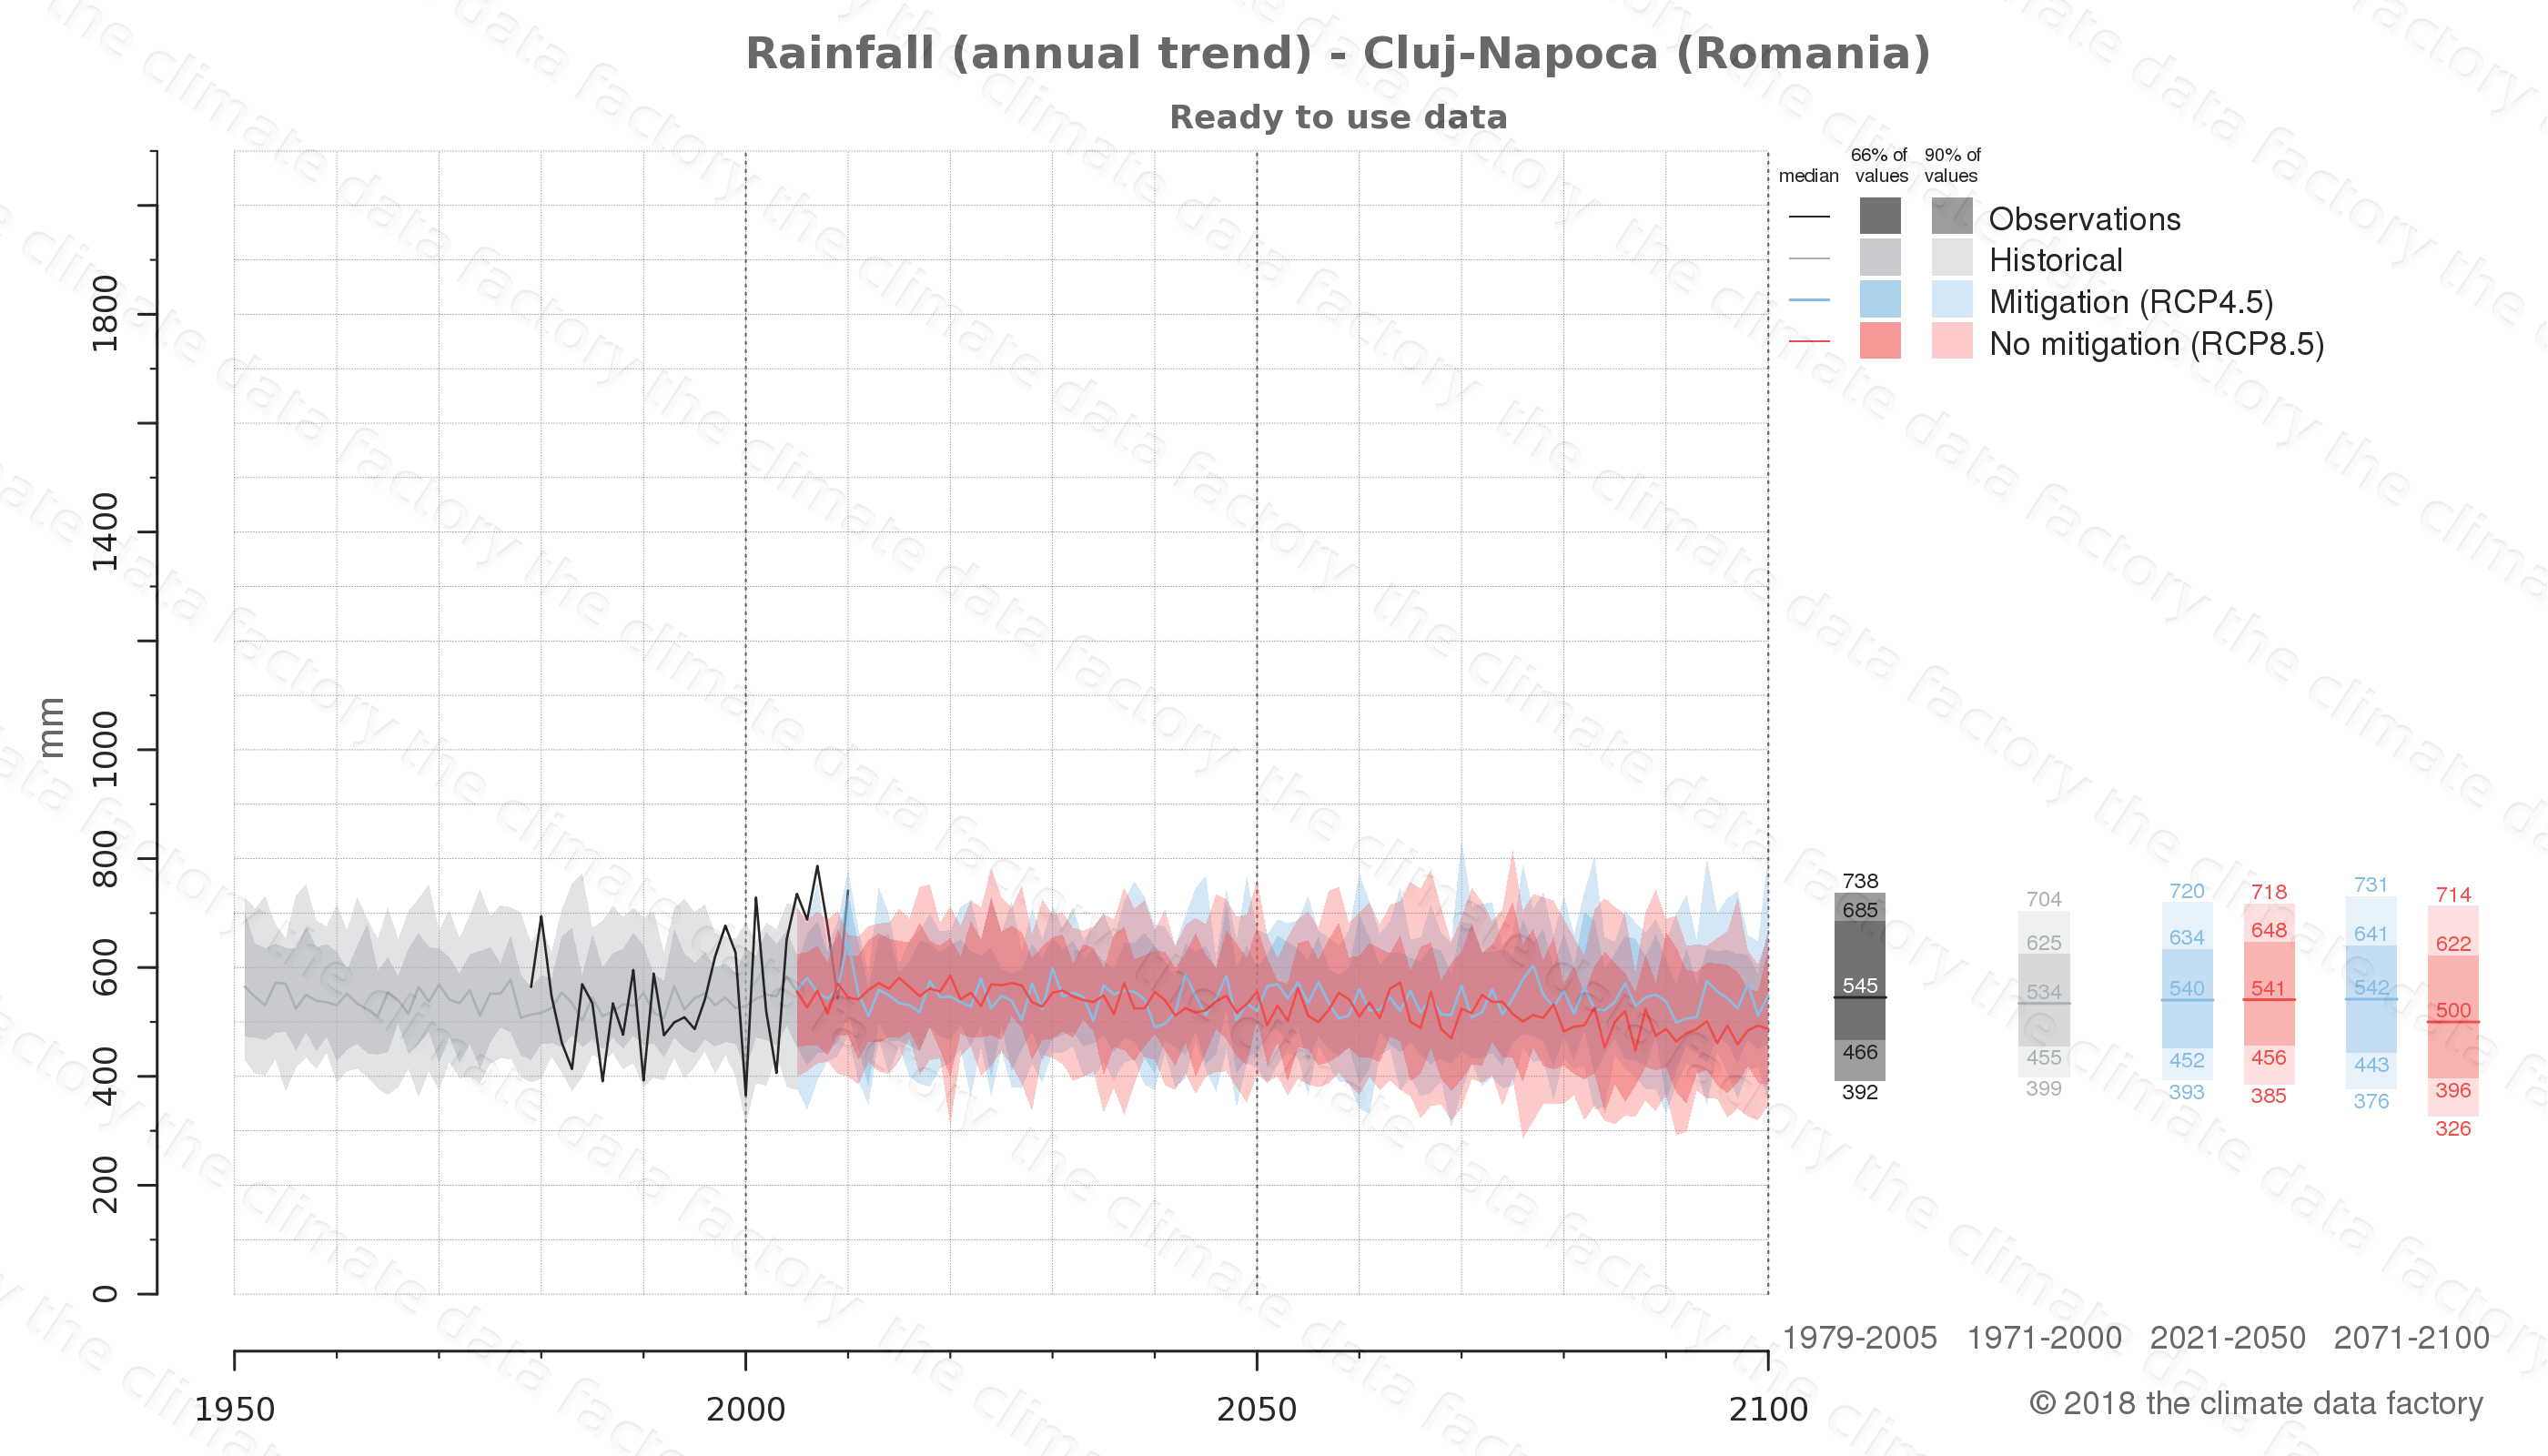 climate change data policy adaptation climate graph city data rainfall cluj-napoca romania